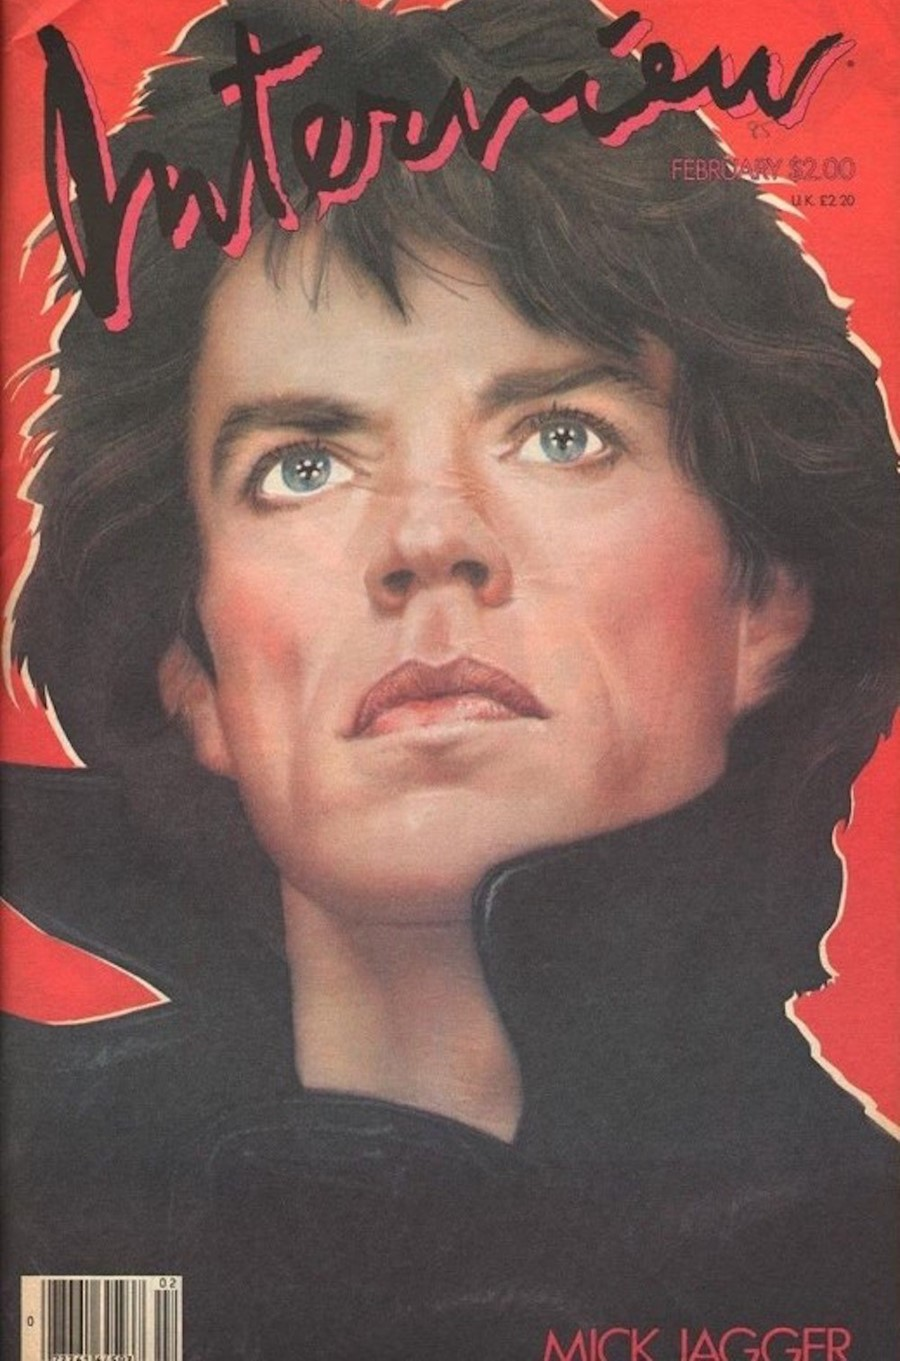 Mick Jagger on the cover of Interview magazine